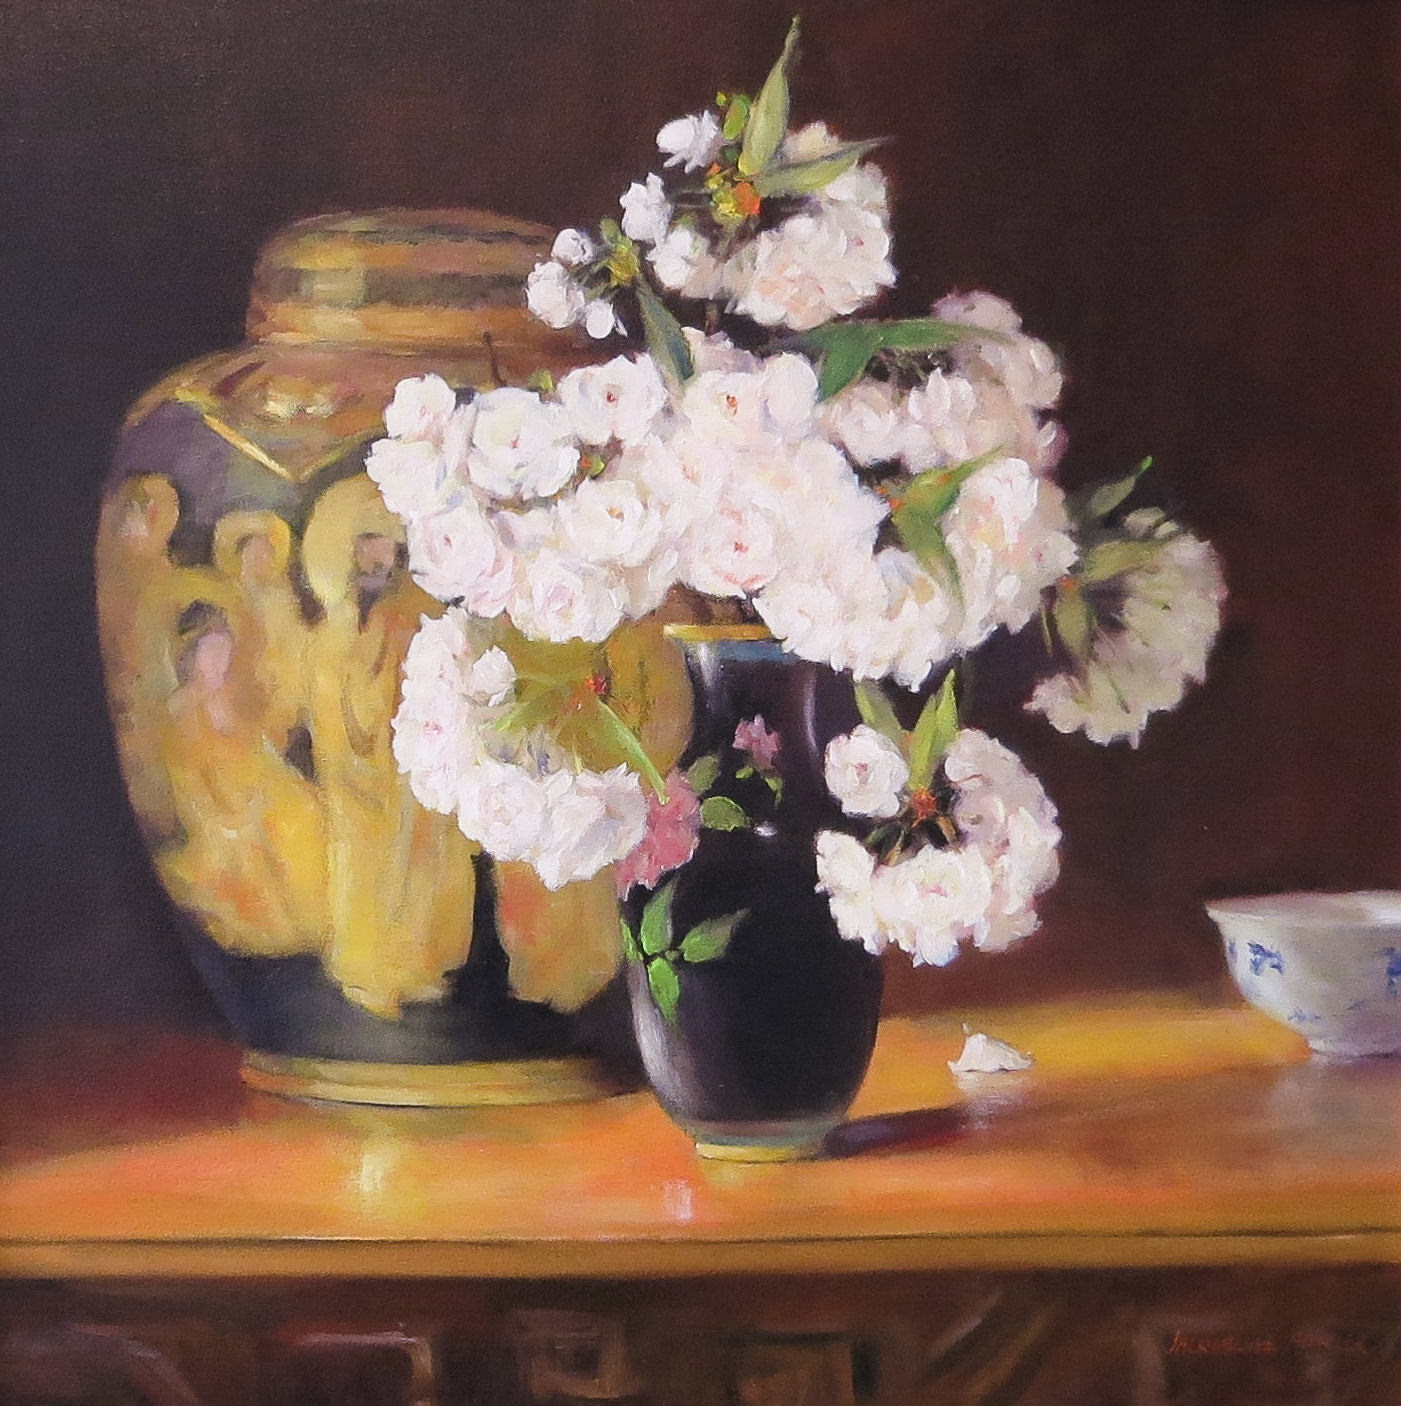 Jacqueline FowlerSatsuma Vase with Blossoms, 2018 Oil on Canvas69 x 69 cm.jpg